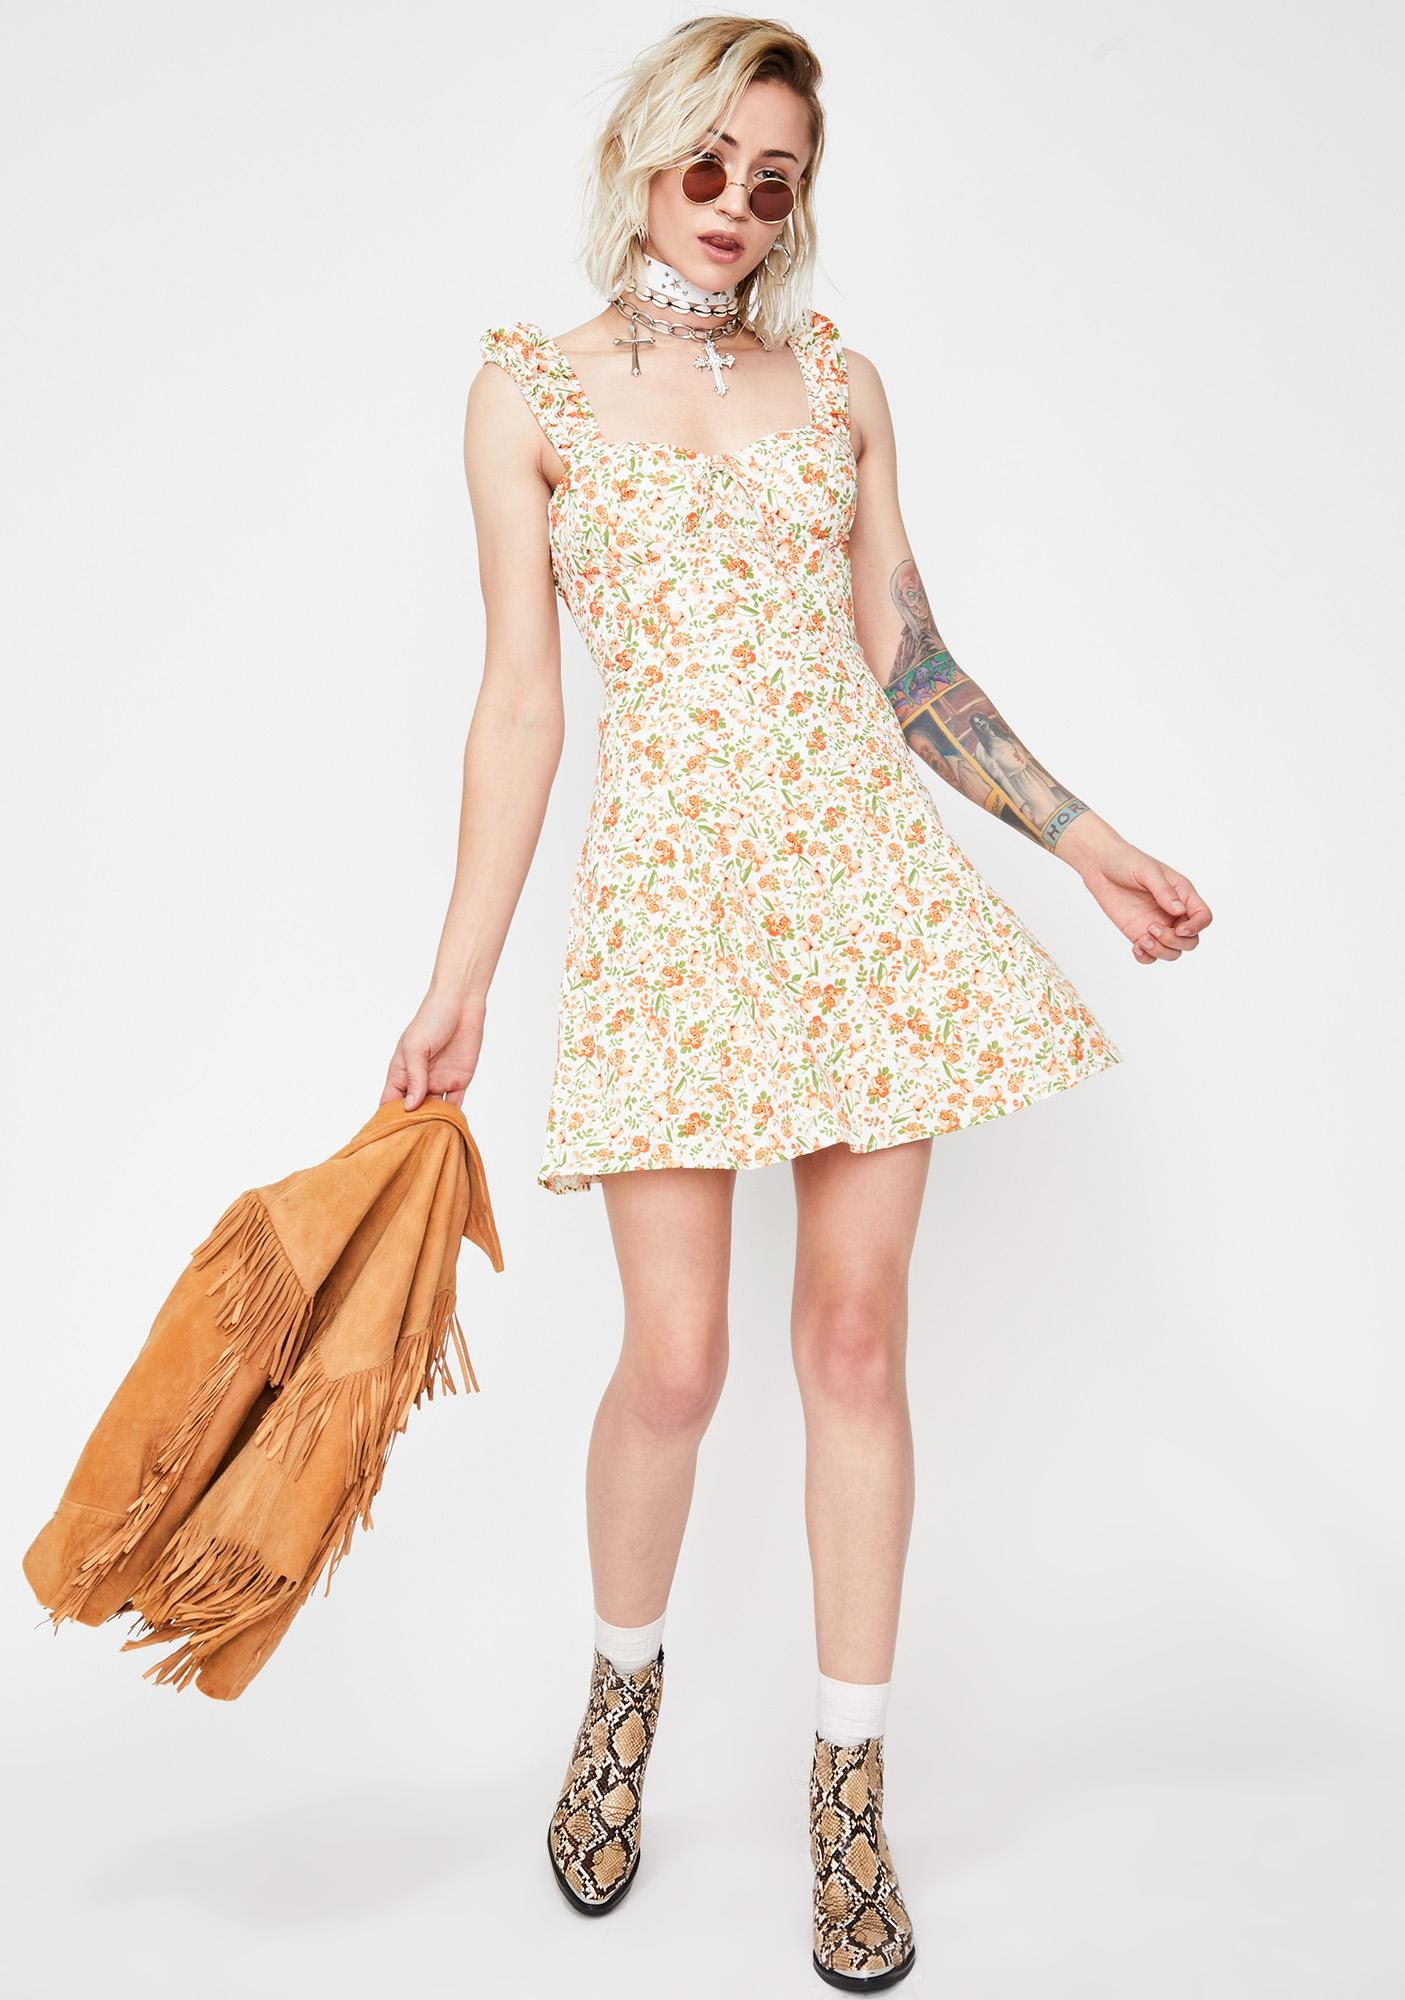 Tangelo Temptation Mini Dress